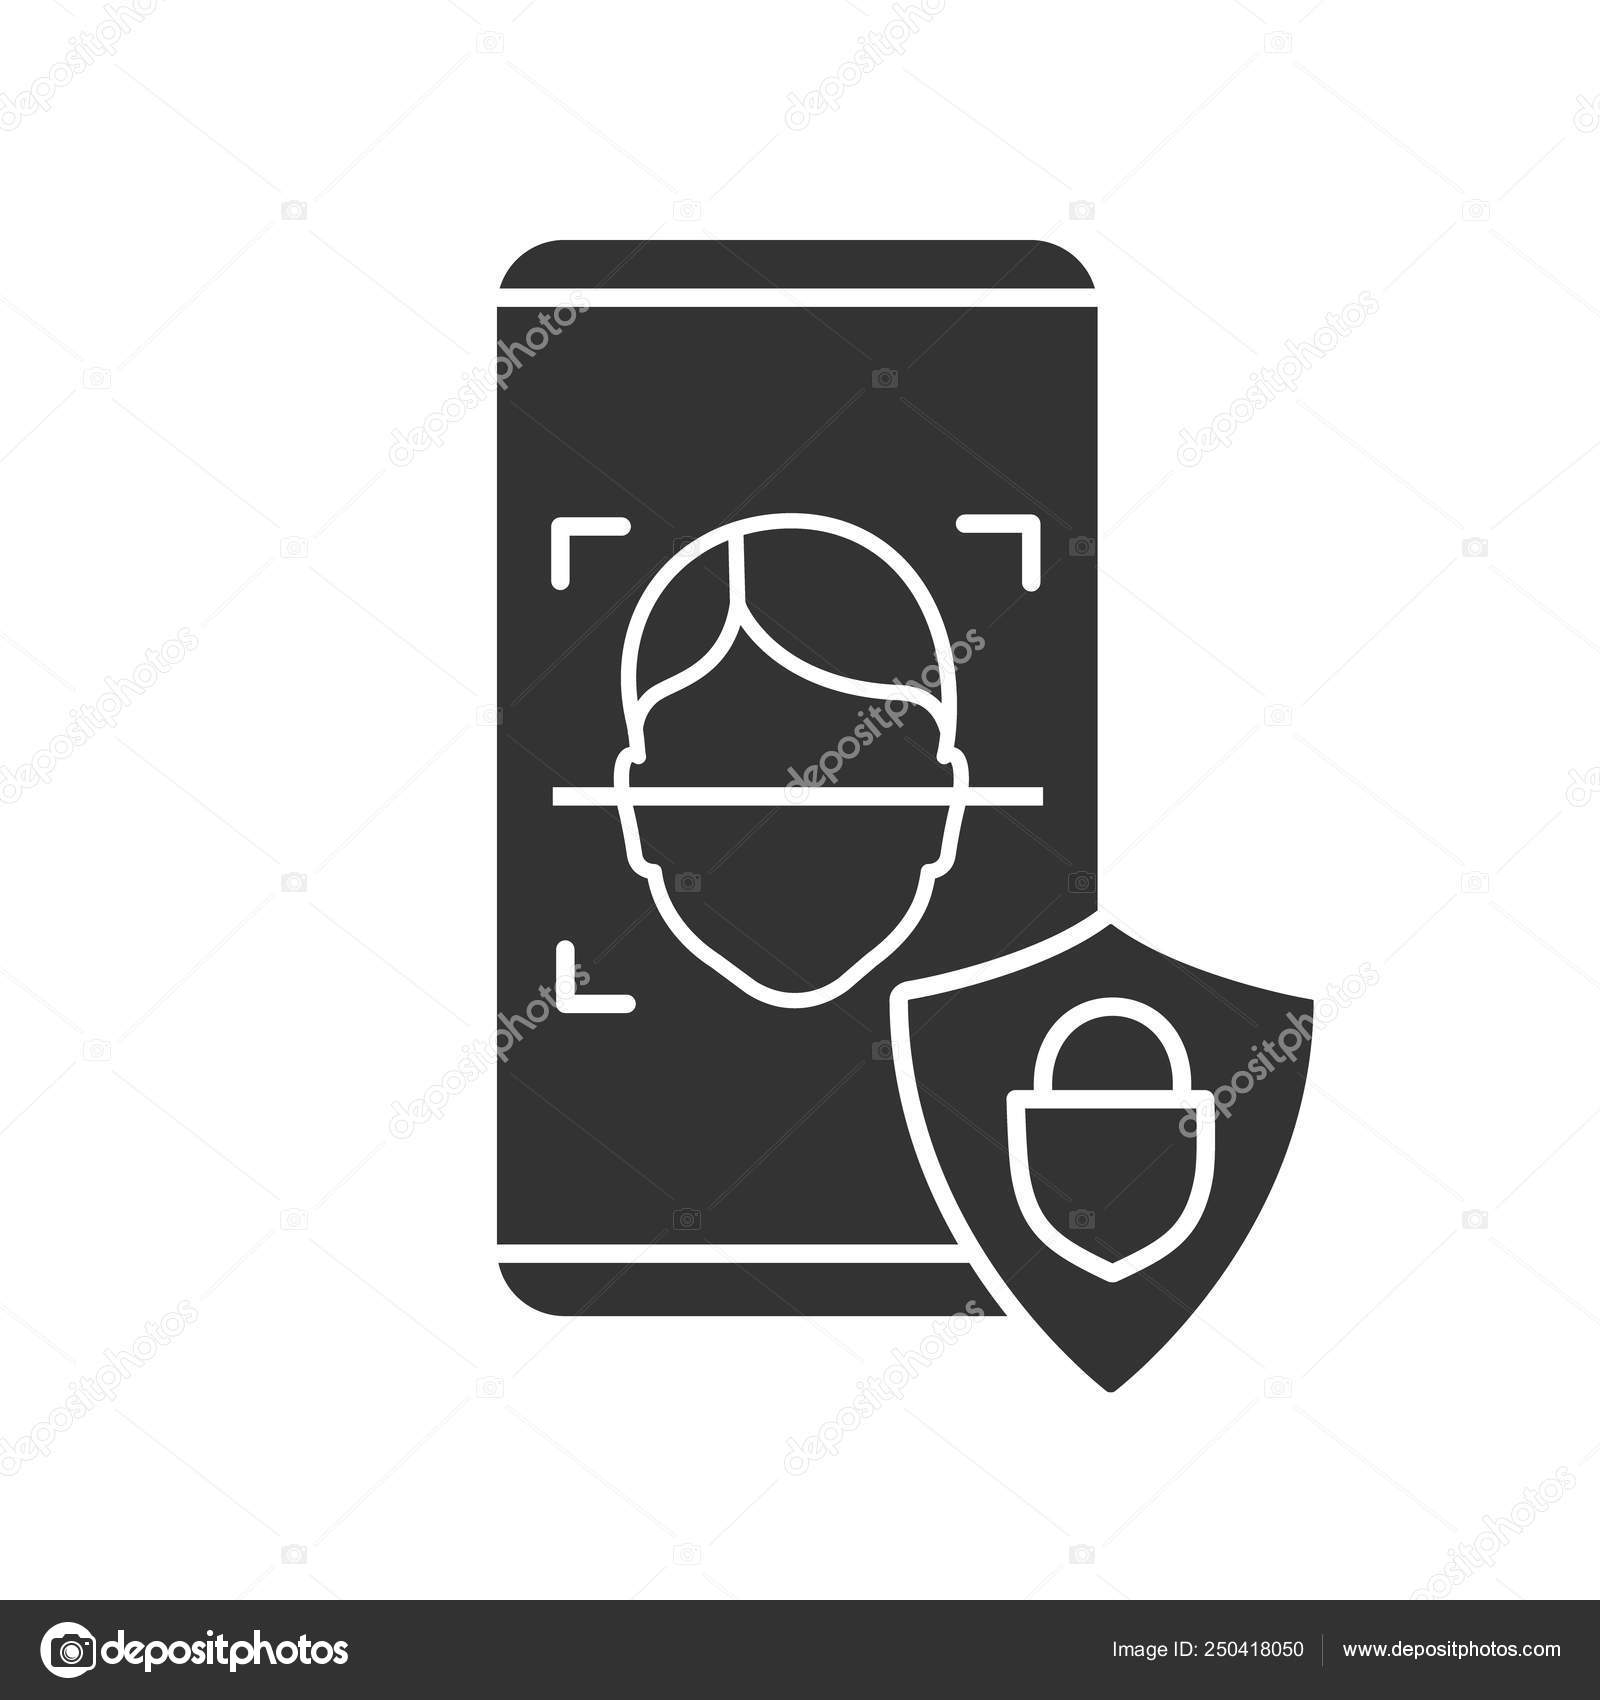 Banking App Facial Recognition Glyph Icon Silhouette Symbol